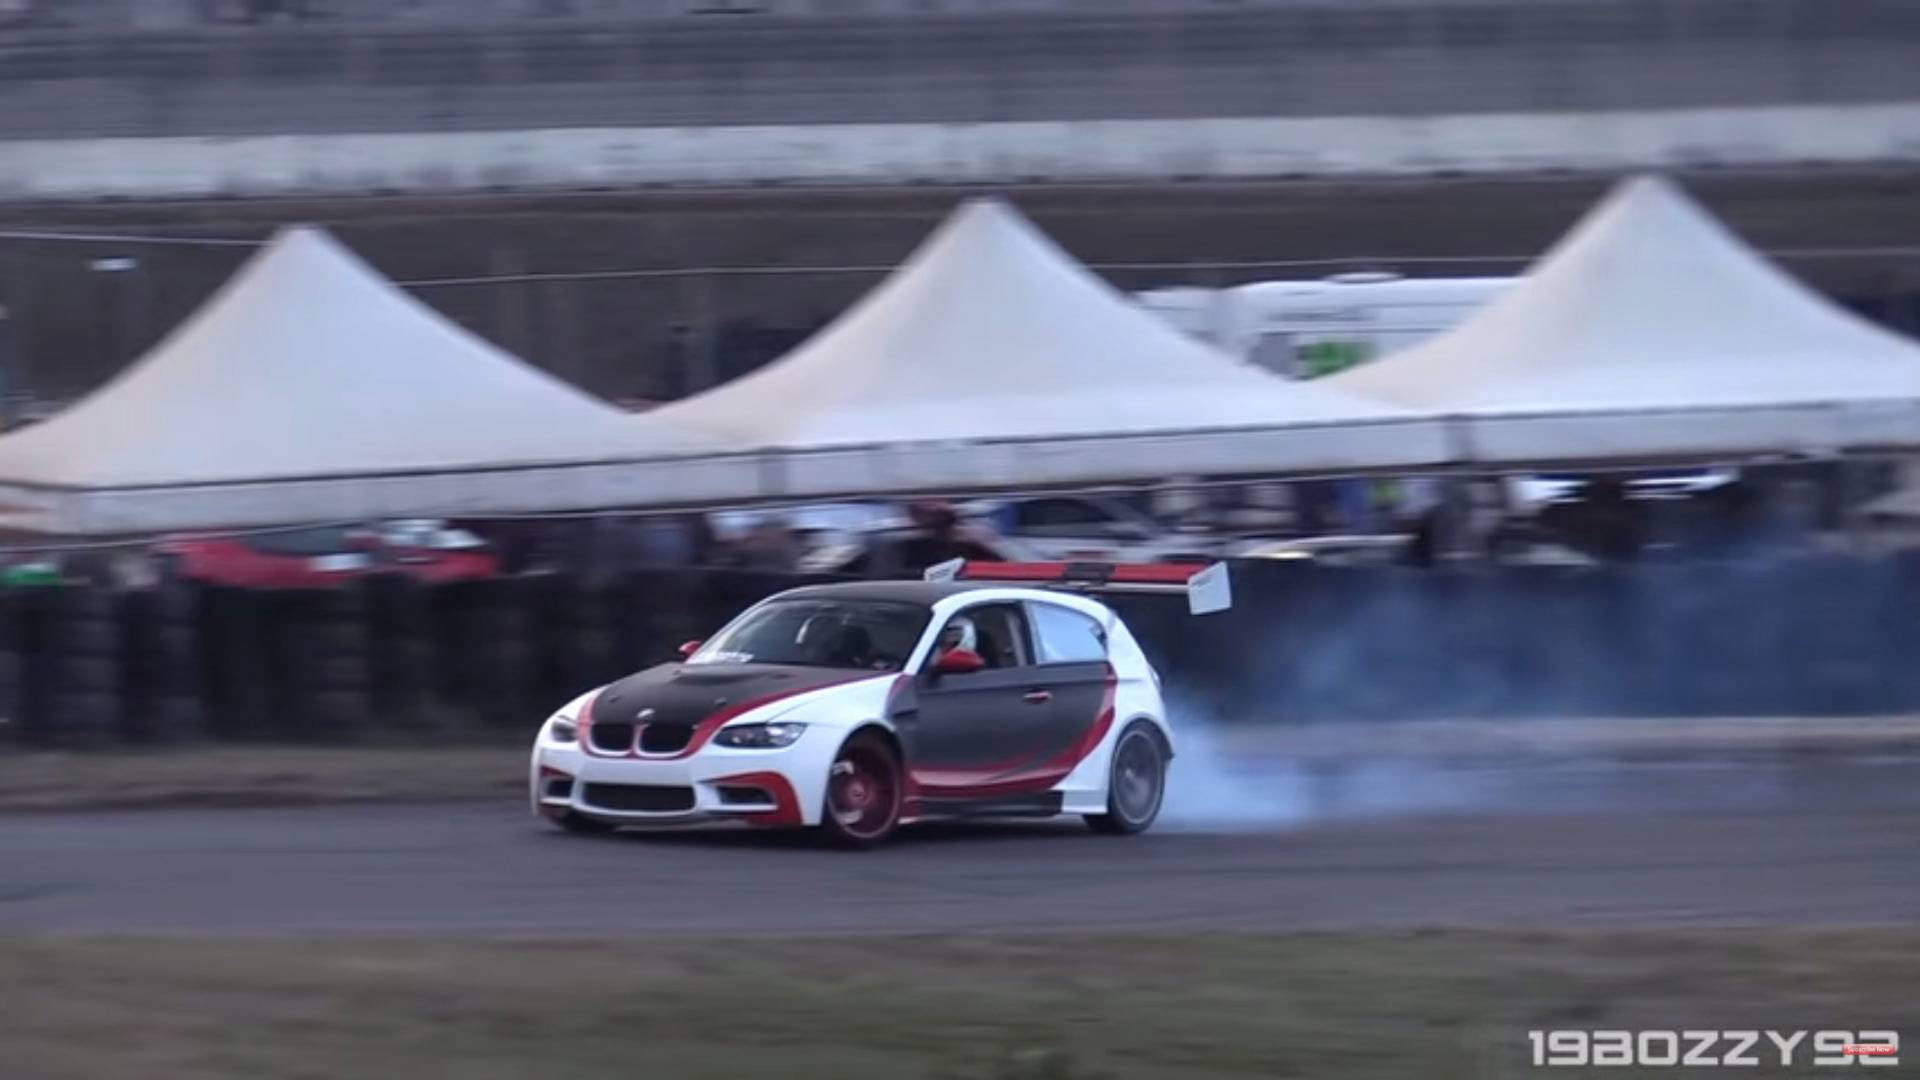 Watch And Listen As This Bmw 1 Series Drifts With V8 Thunder